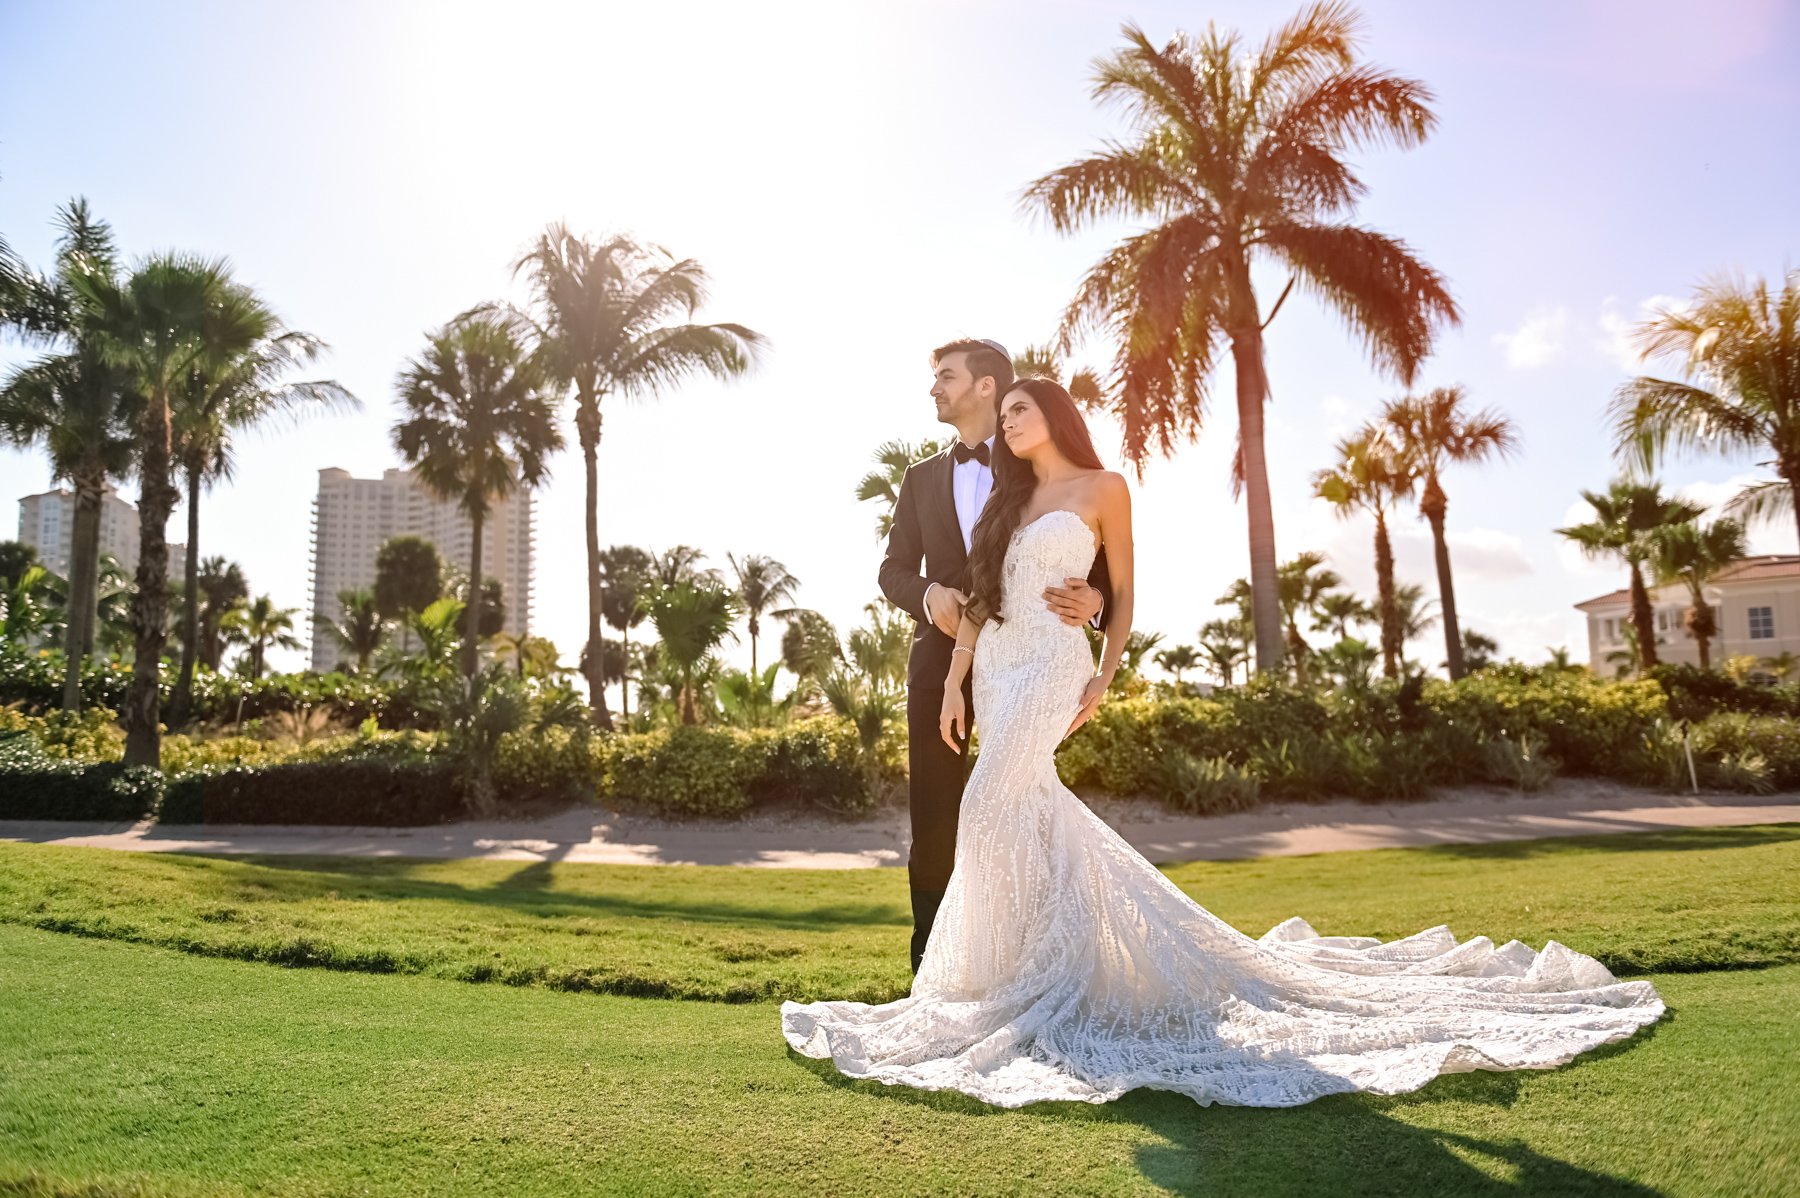 Luxury Private Estate Wedding at North Miami by Domino Arts Photography